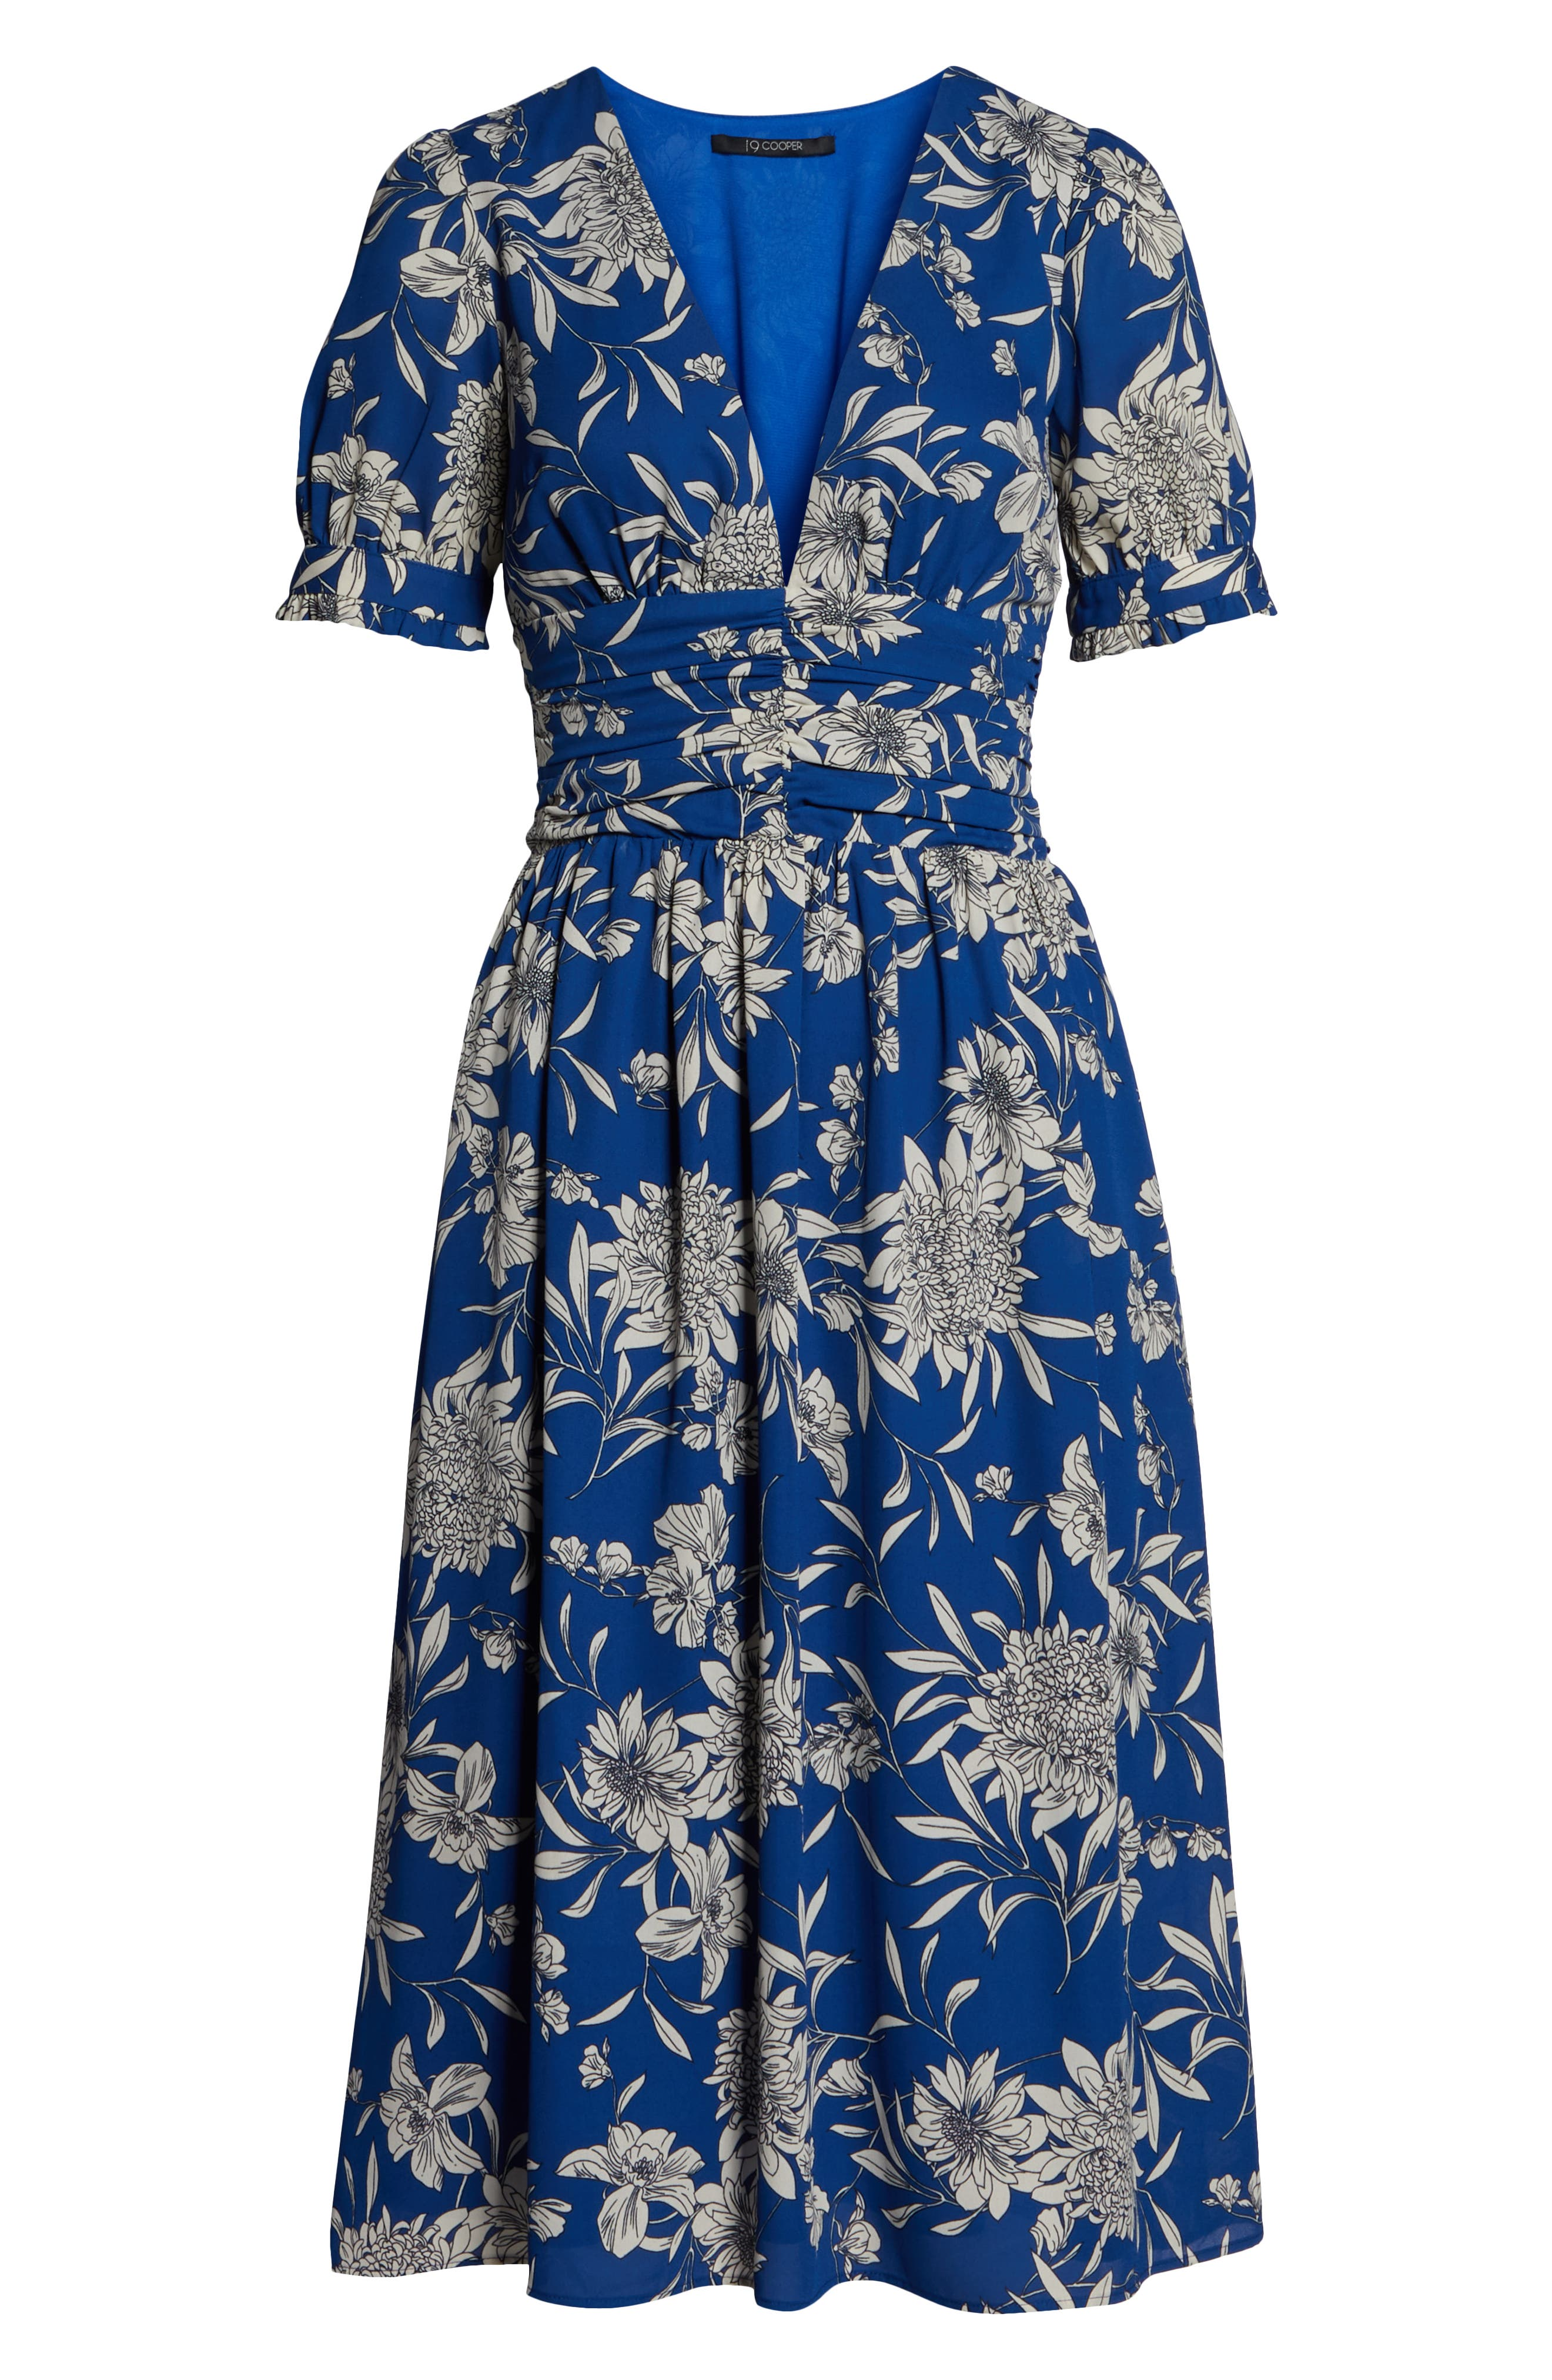 19 COOPER, Shirred Waist Midi Dress, Alternate thumbnail 7, color, BLUE/ WHITE